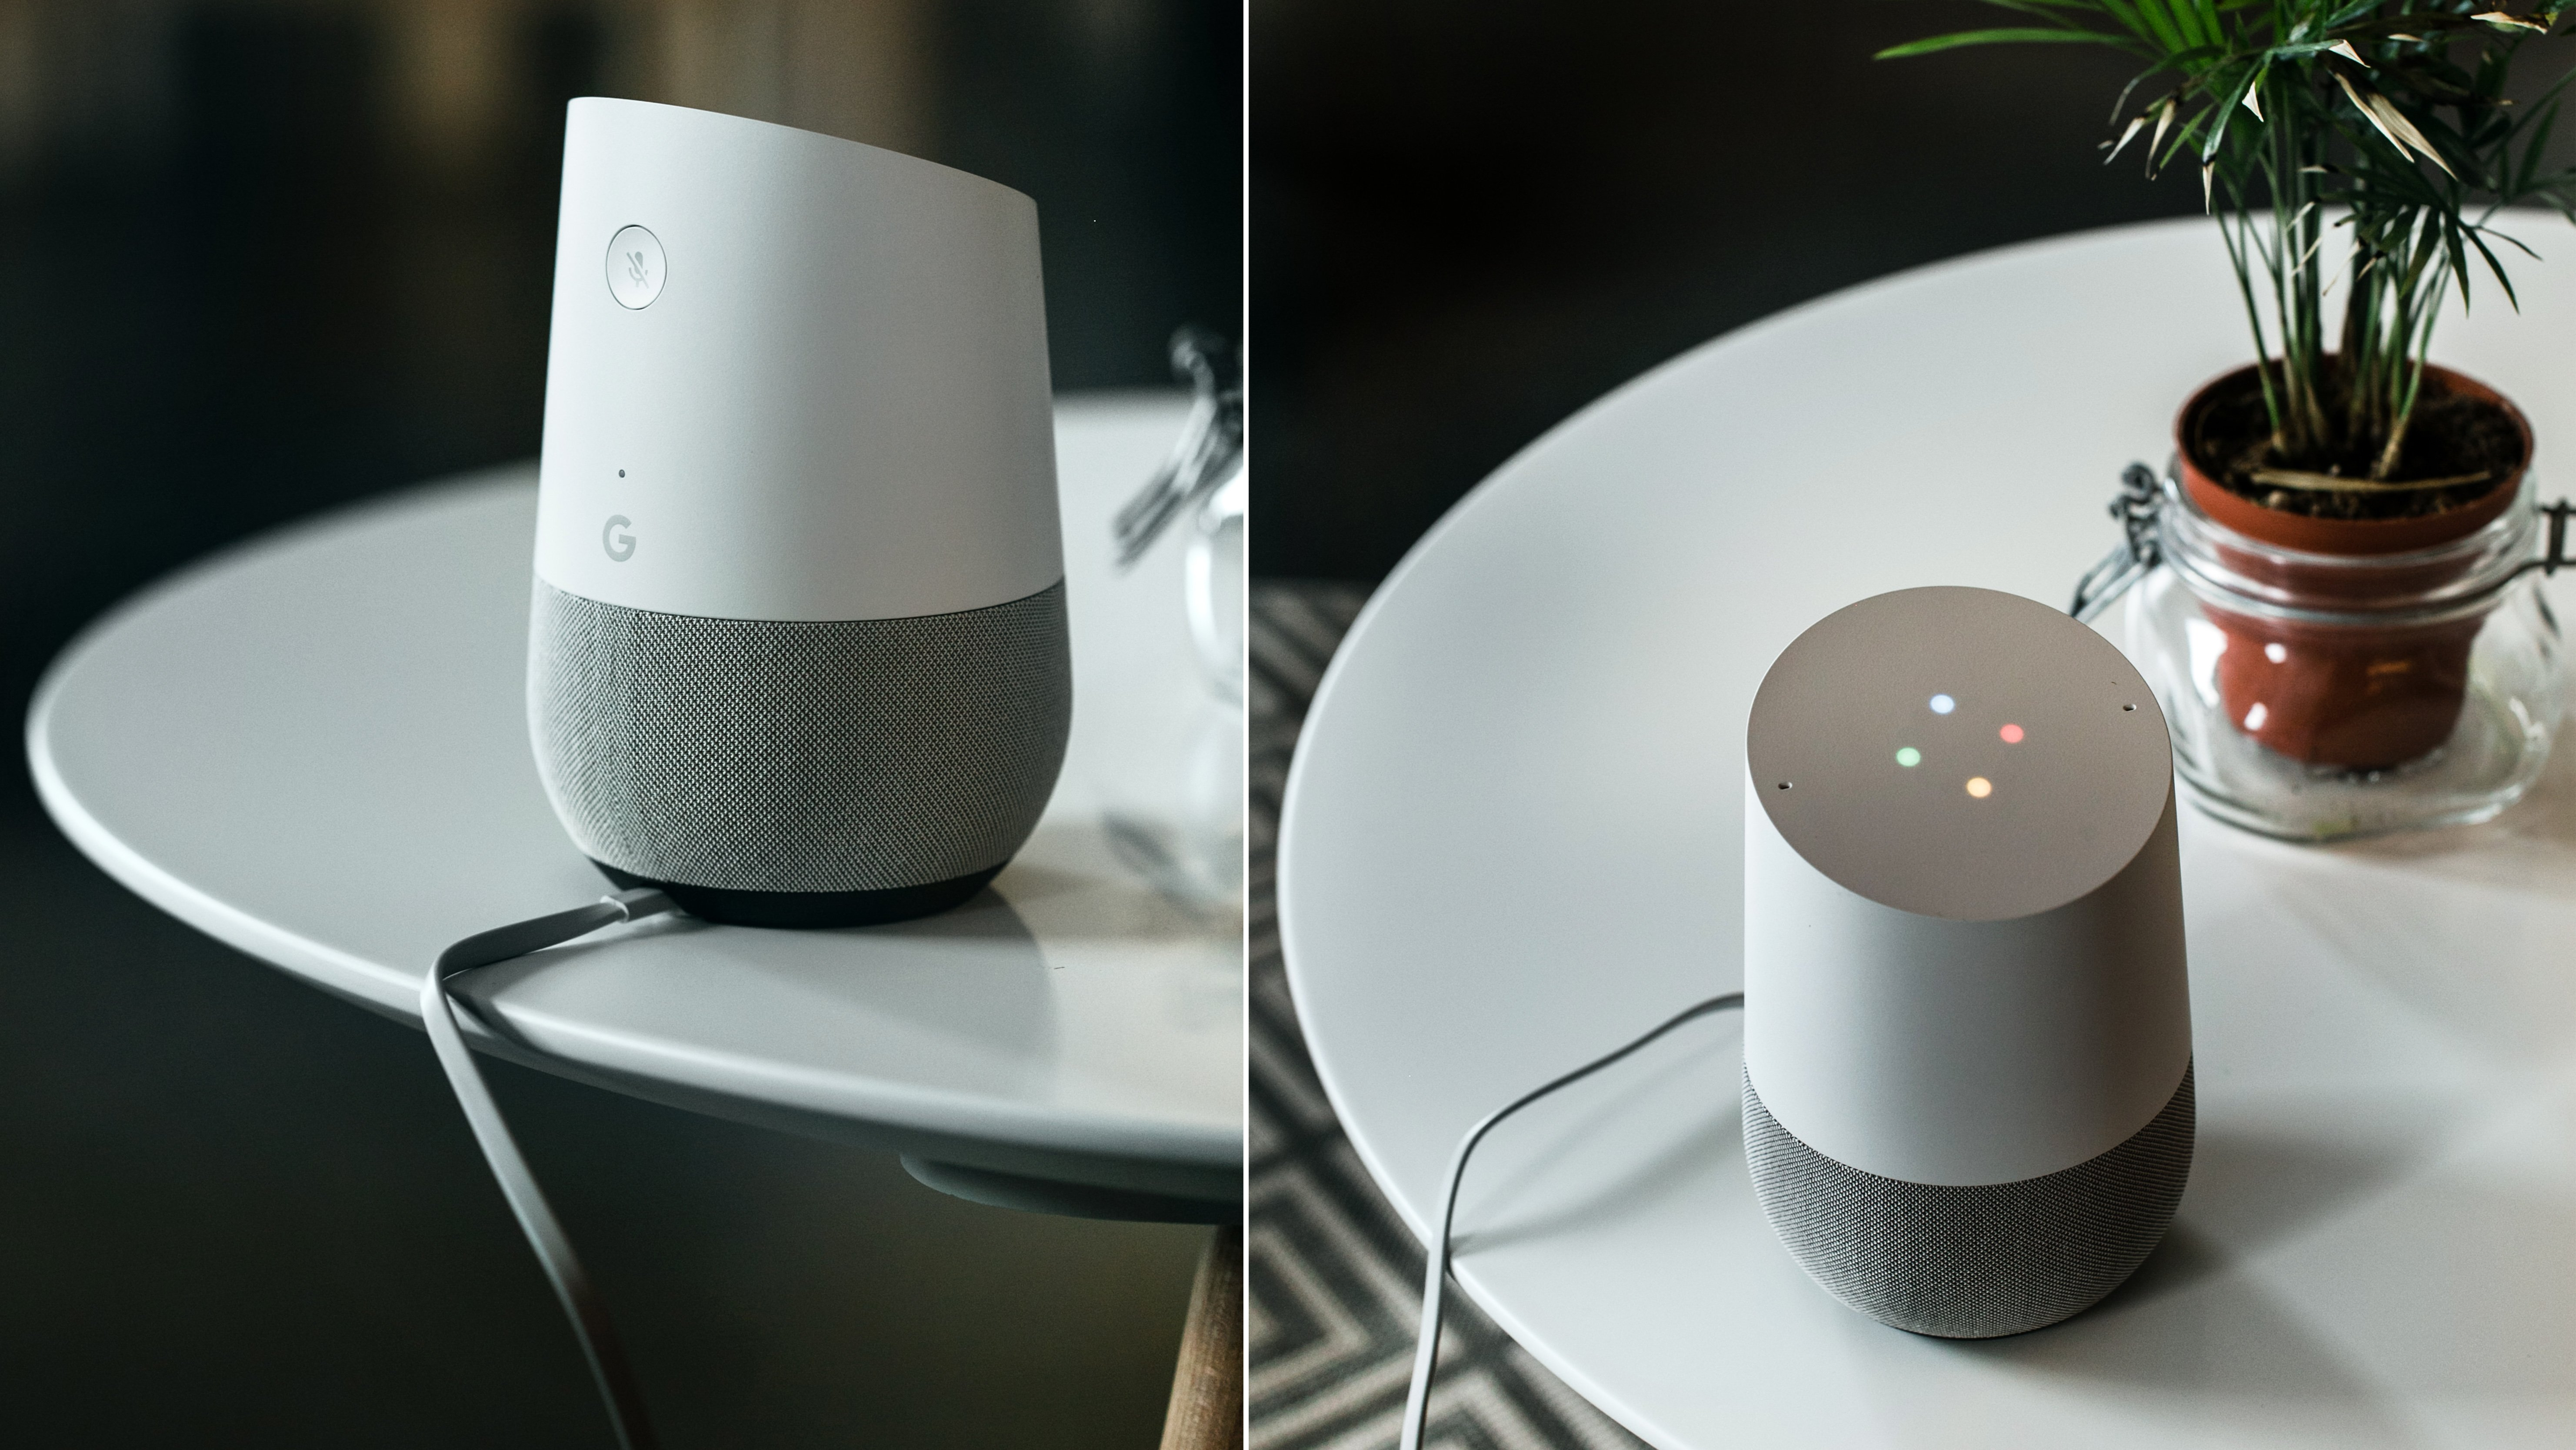 Google Home review: still much to learn - Hardware reviews ...